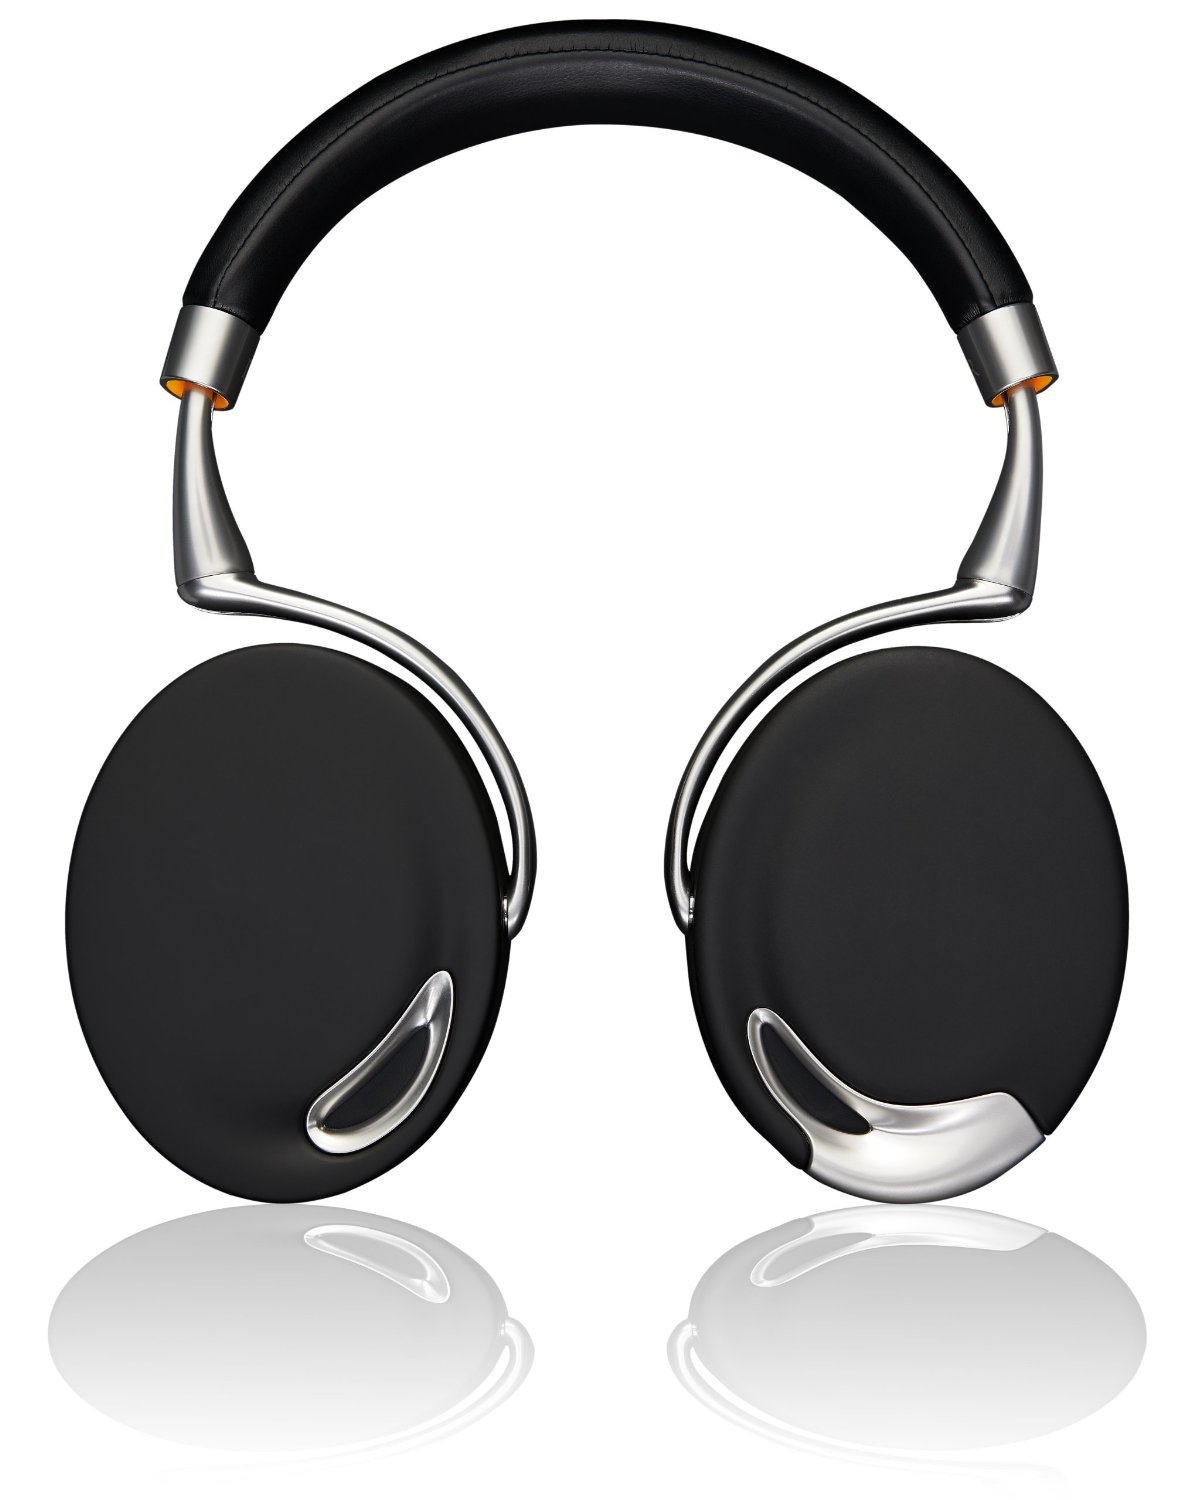 Parrot Zik wireless headphone (Black Gold)